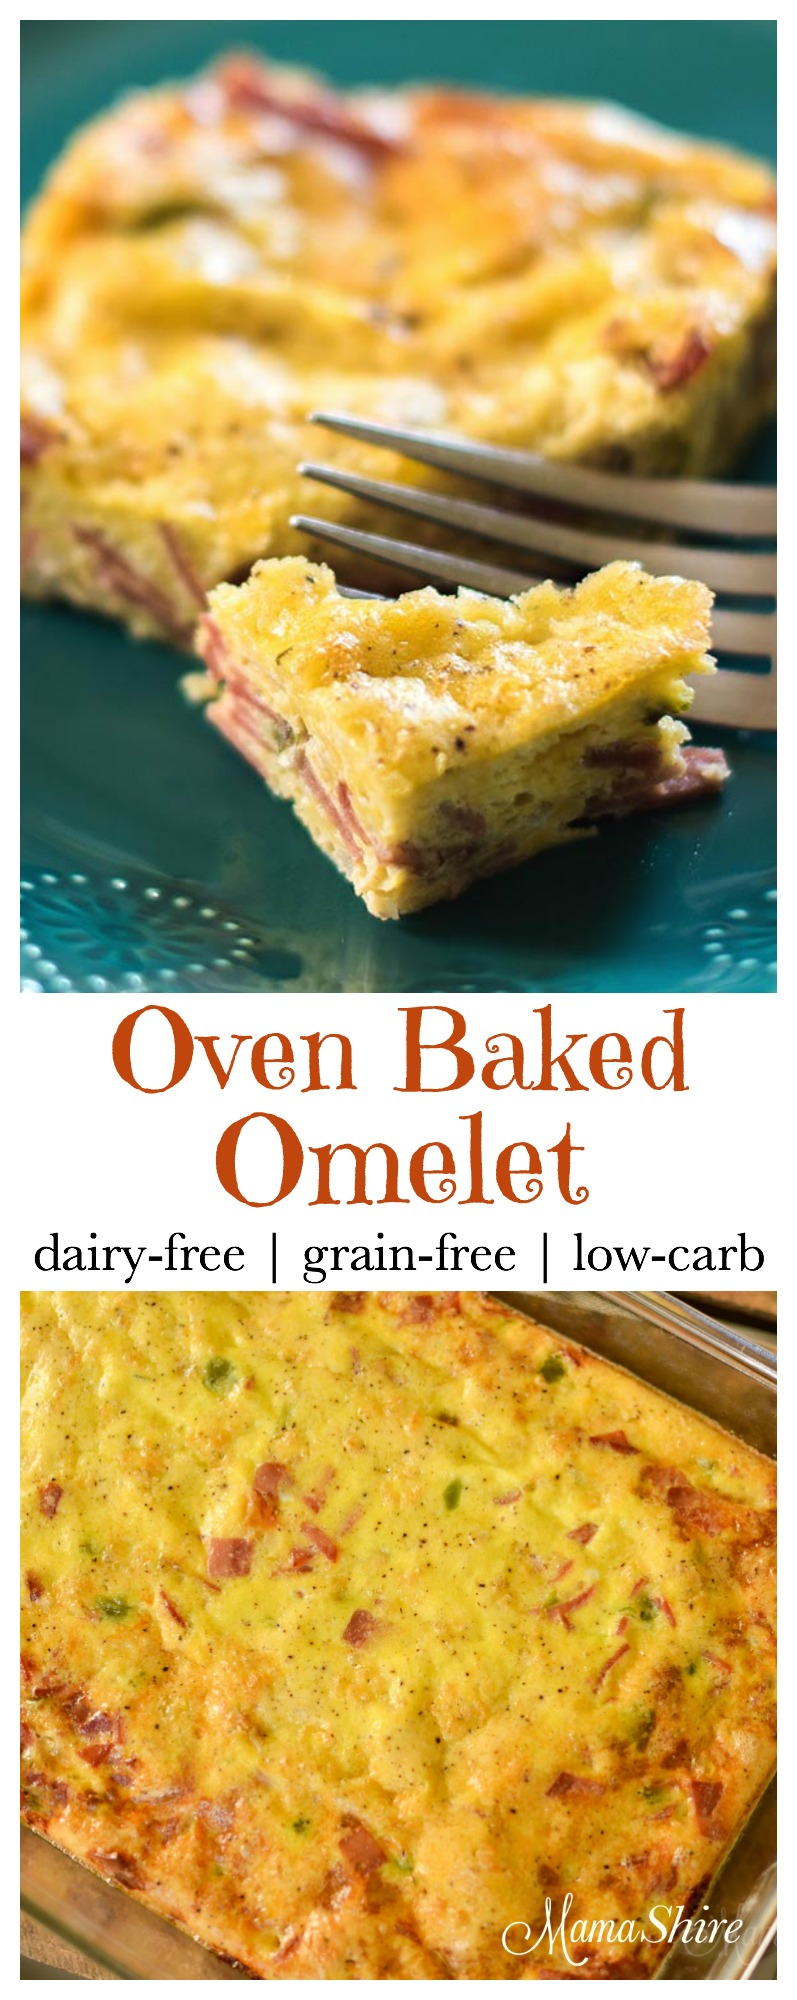 Oven Baked Omelet (Dairy-Free)